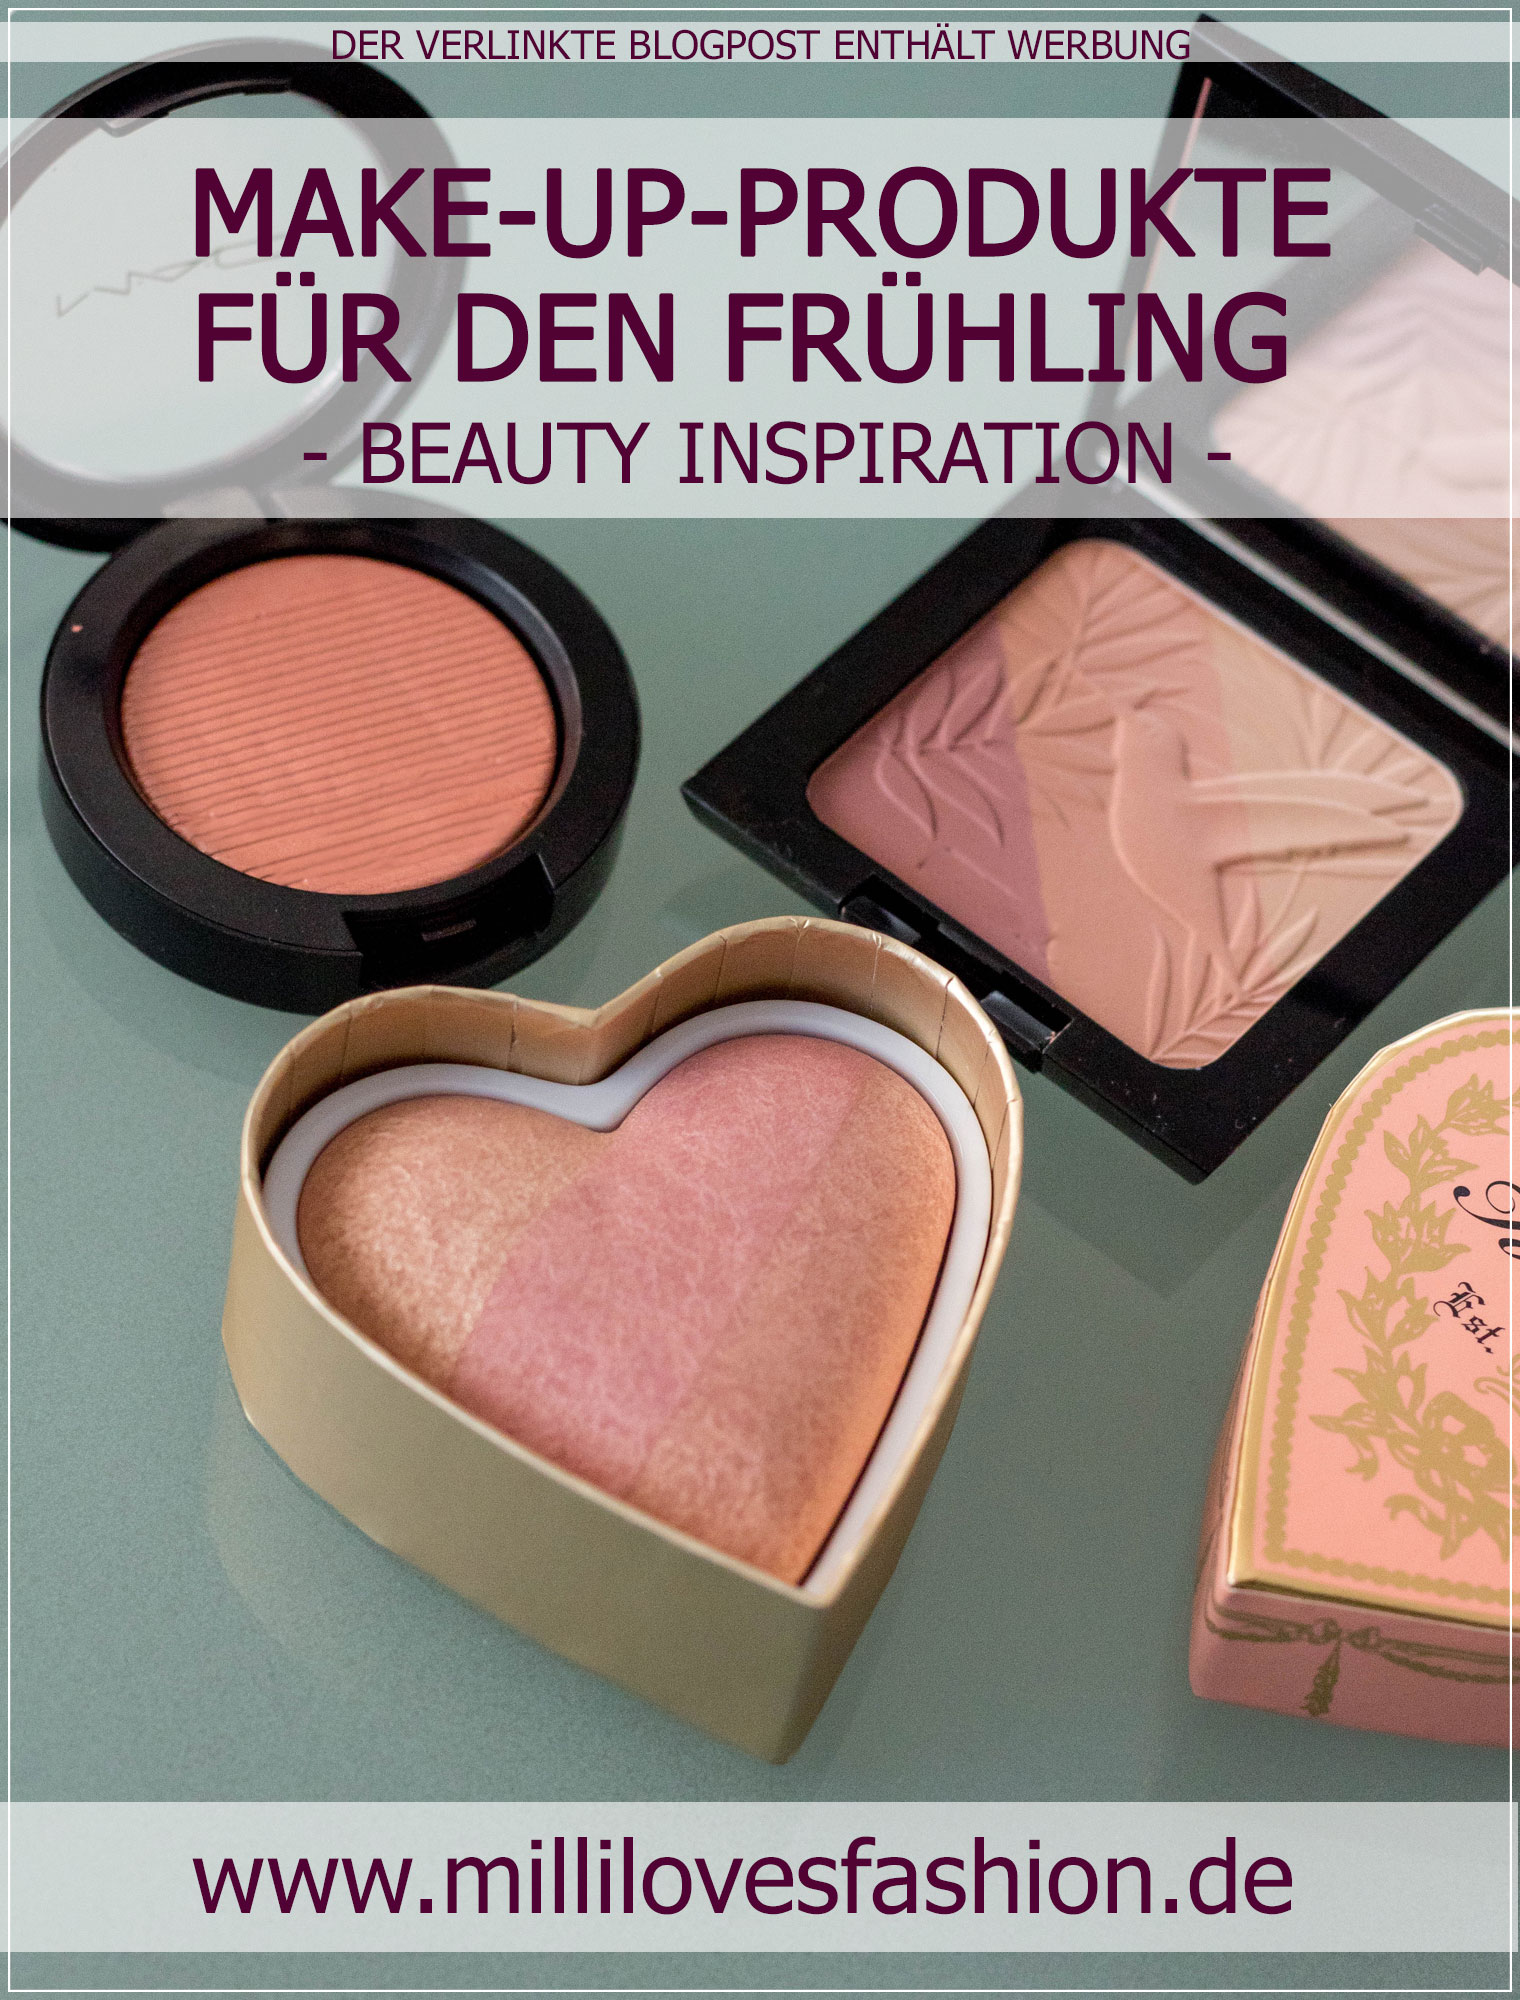 Make-Up-Produkte, Frühlings-Make-Up, Beautyblog, Beautyinspiration, Spring-Make-Up, Alltagsmake-Up, Bloggerin, Fashionblog